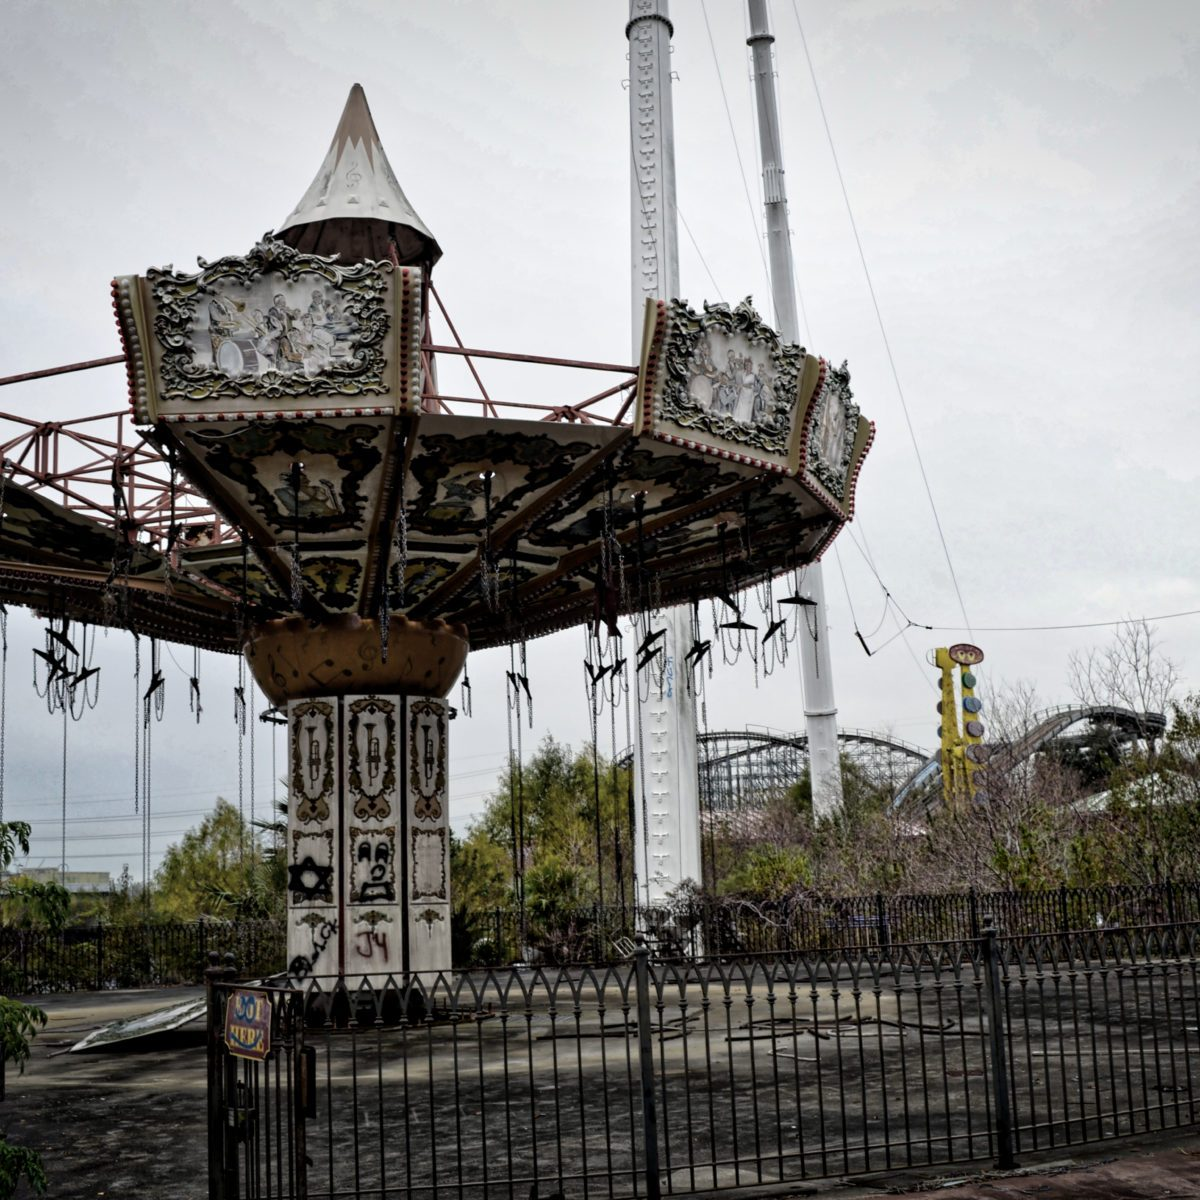 13 Attractions That Are So Creepy, They Are Off-Limits to Tourists